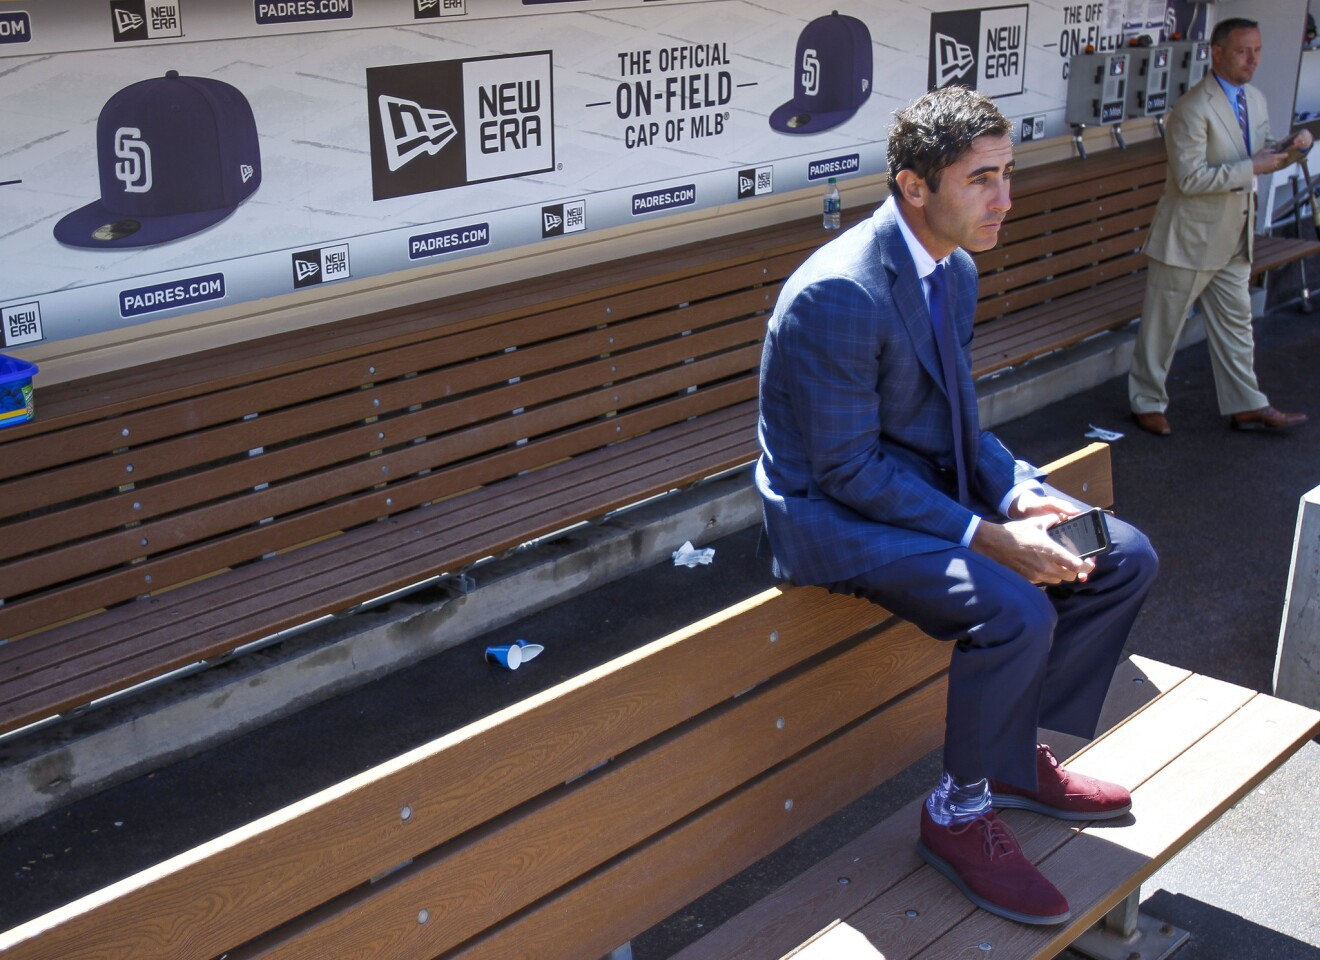 SAN DIEGO, March 29, 2018 | General manager of he Padres A.J. Preller sits in the Padres dugout before the Padres play the Milwaukee Brewers on Opening Day at Petco Park in San Diego on Thursday. | Photo by Hayne Palmour IV/San Diego Union-Tribune/Mandatory Credit: HAYNE PALMOUR IV/SAN DIEGO UNION-TRIBUNE/ZUMA PRESS San Diego Union-Tribune Photo by Hayne Palmour IV copyright 2017